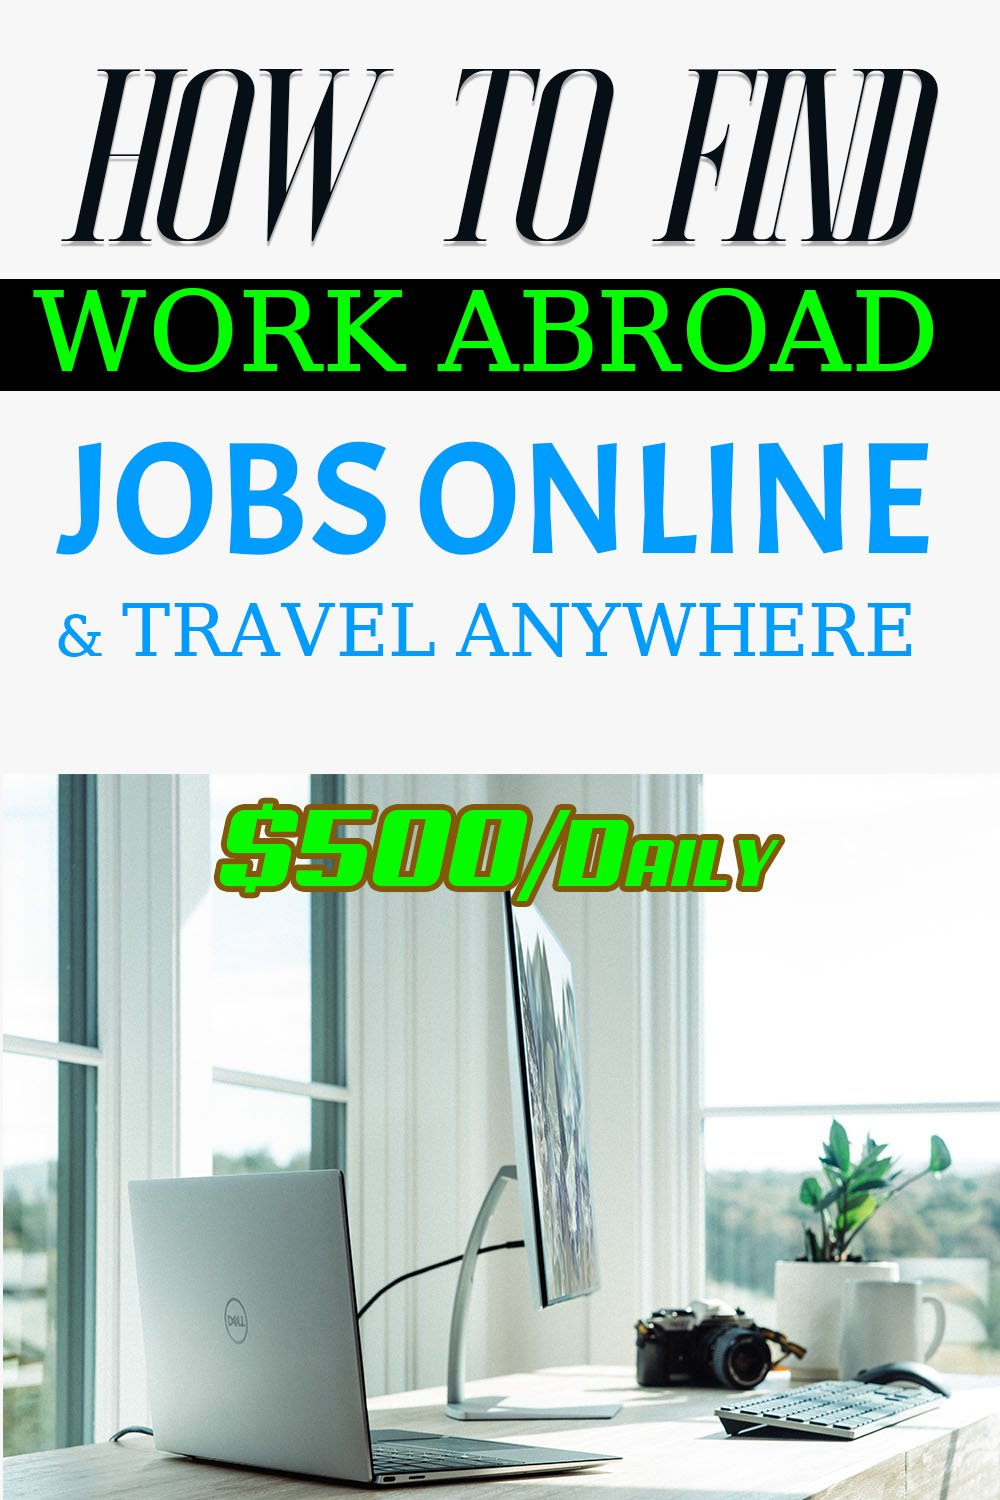 How to Find Work Abroad Jobs Online and Travel Anywhere?